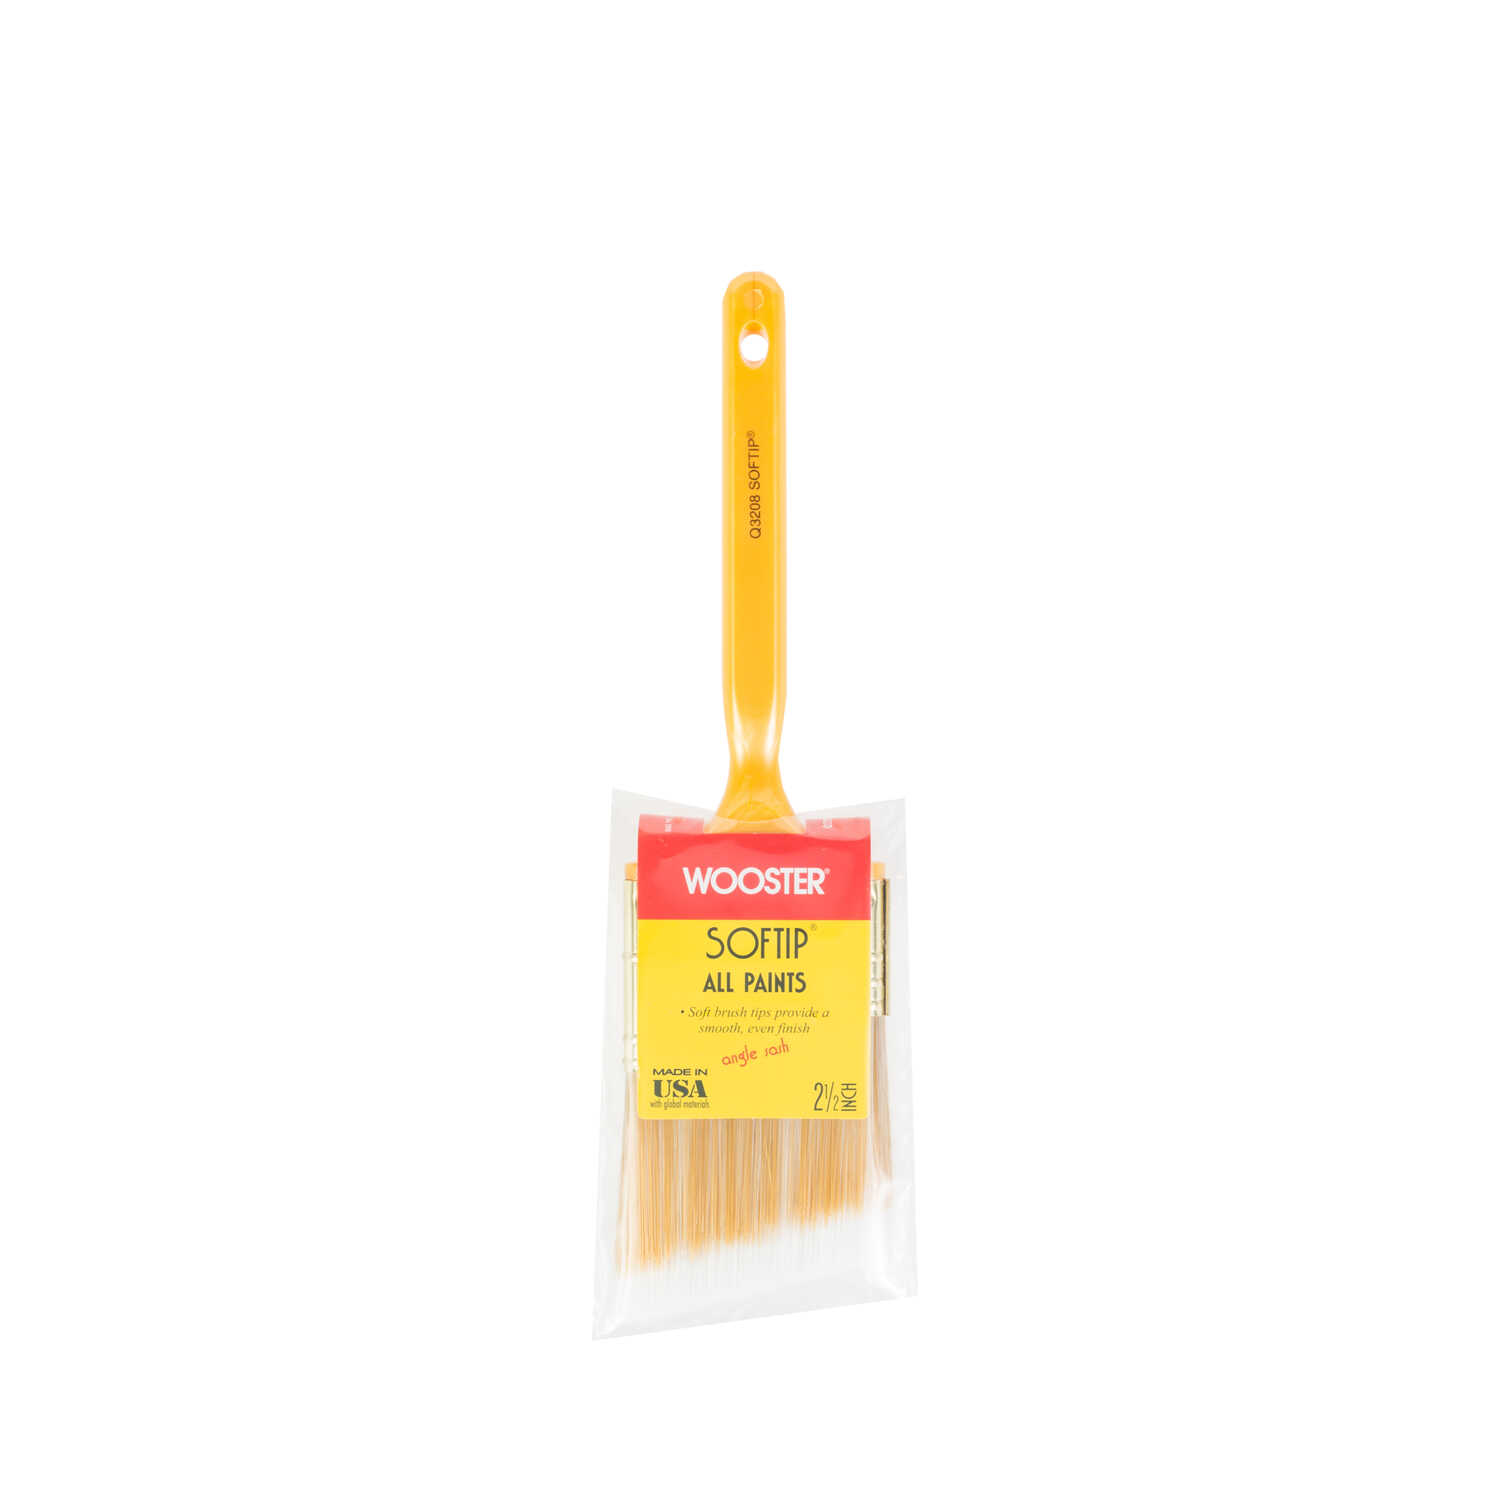 Wooster  Softip  2 1/2 in. W Synthetic Blend  Trim Paint Brush  Angle